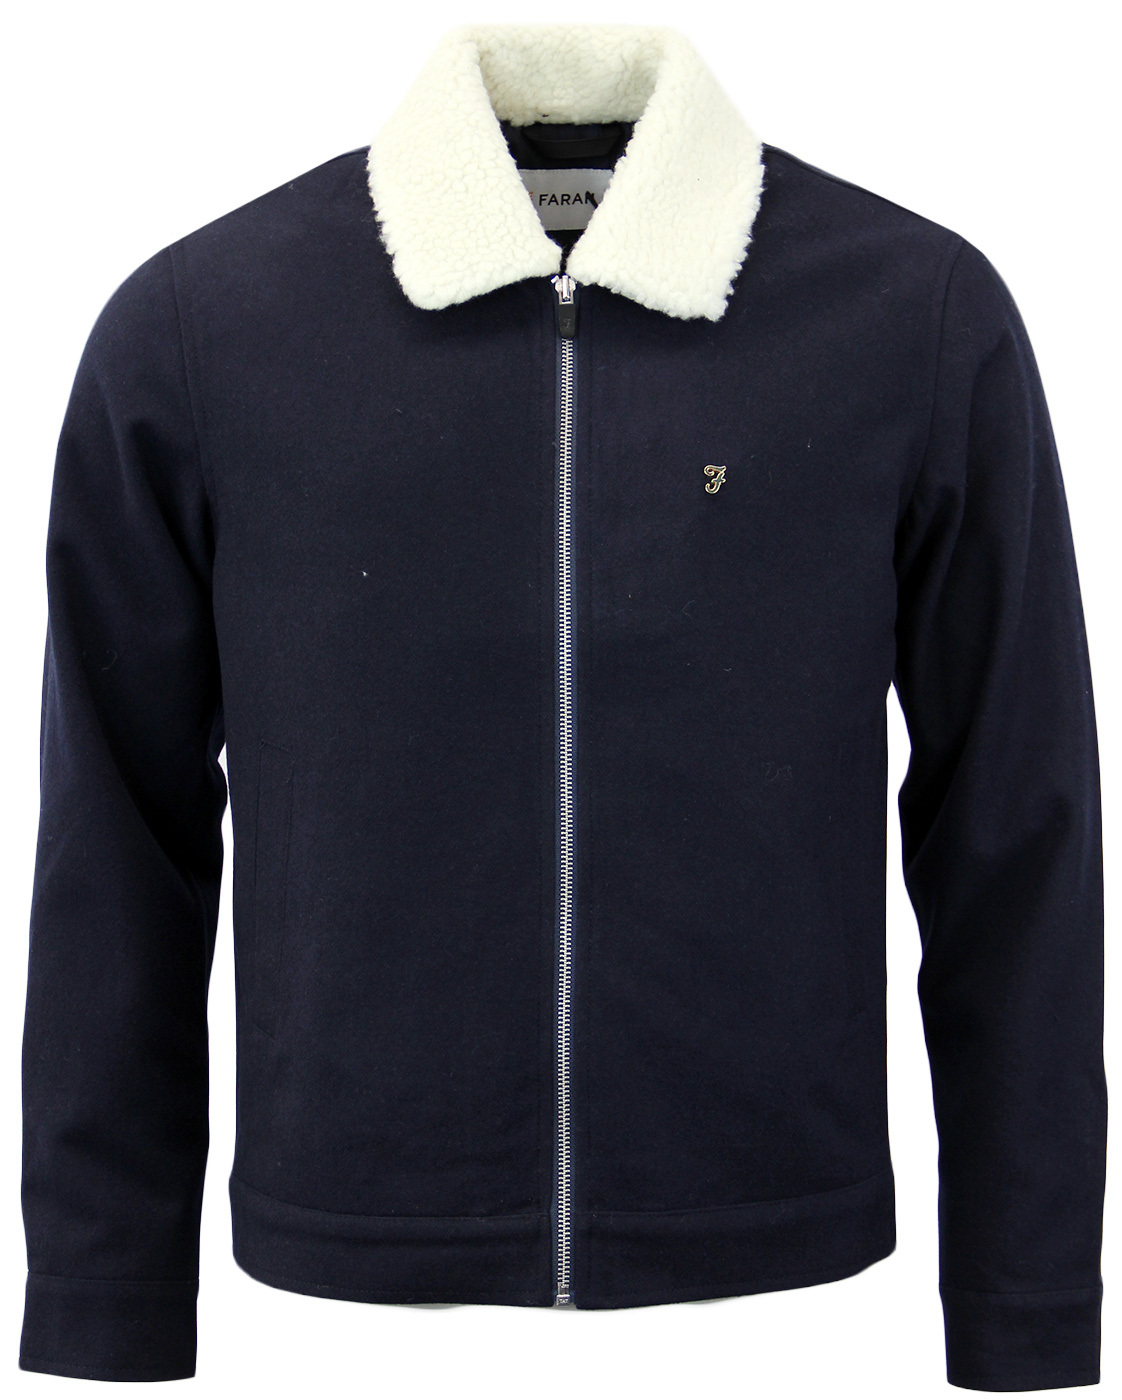 Otley FARAH Retro Mod Shearling Collar Jacket (N)